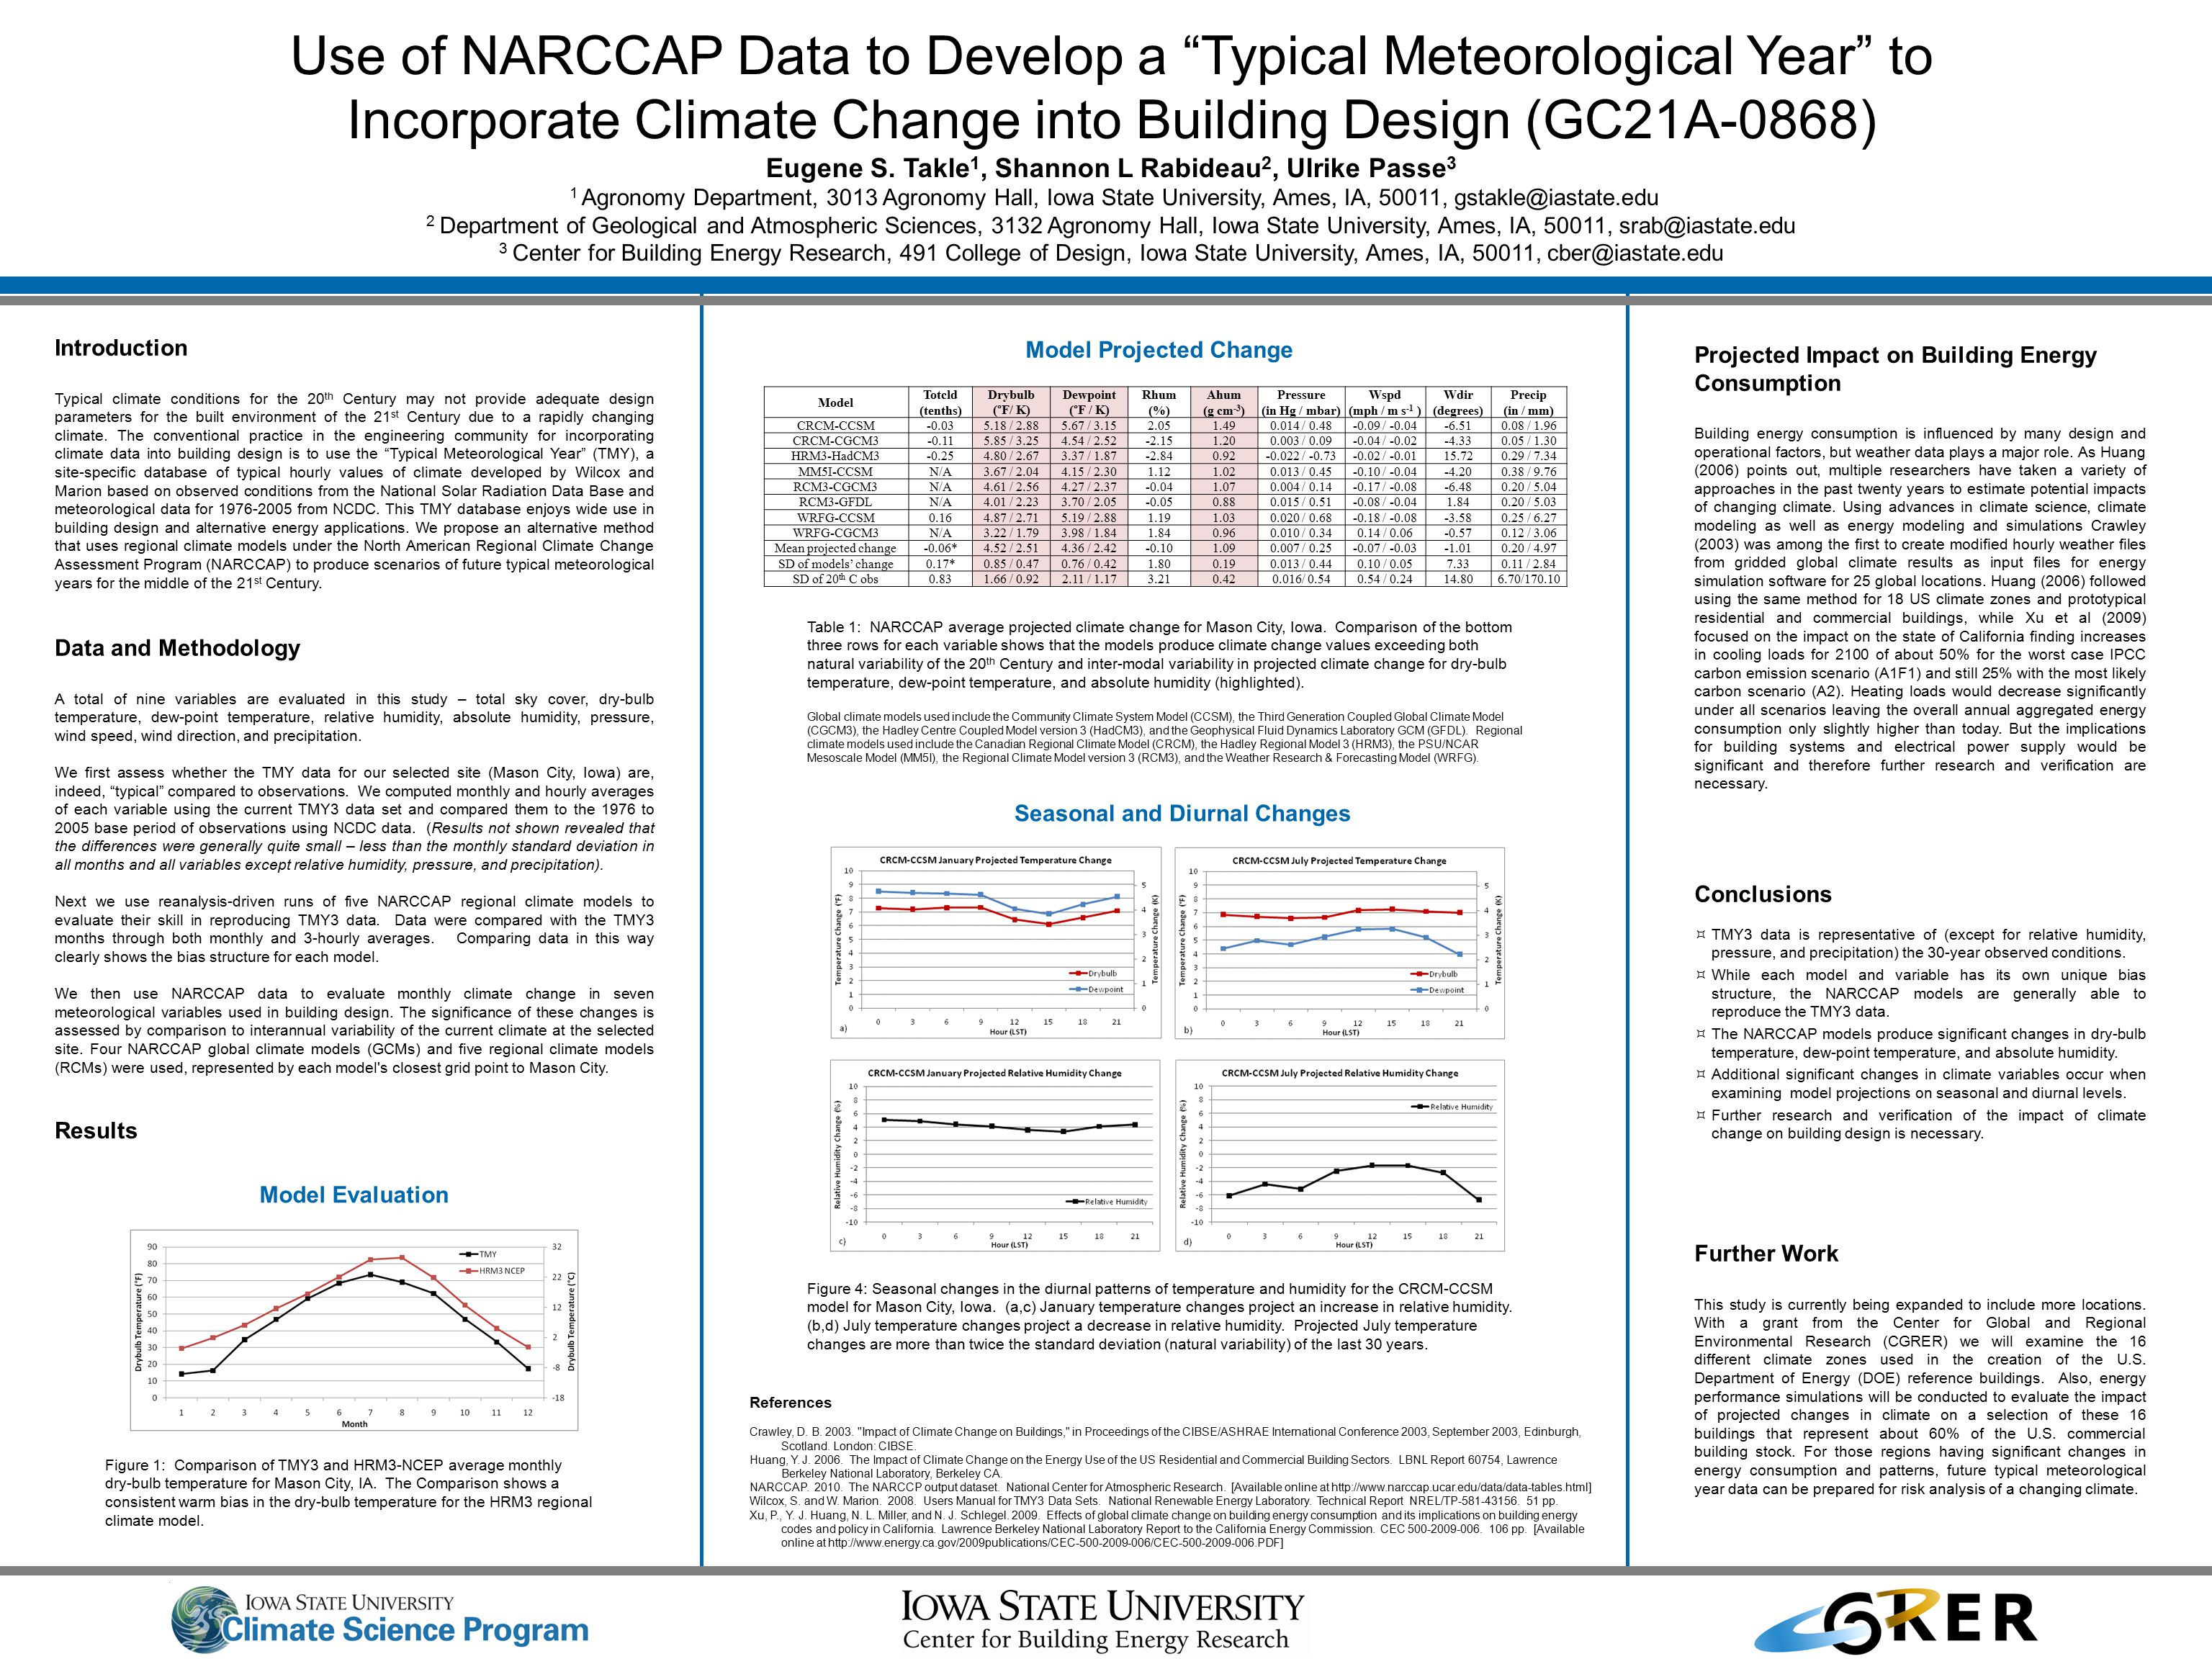 Use of NARCCAP Data to Develop a Typical Meteorological Year to Incorporate Climate Change into Building Design (GC21A-0868) Eugene S.